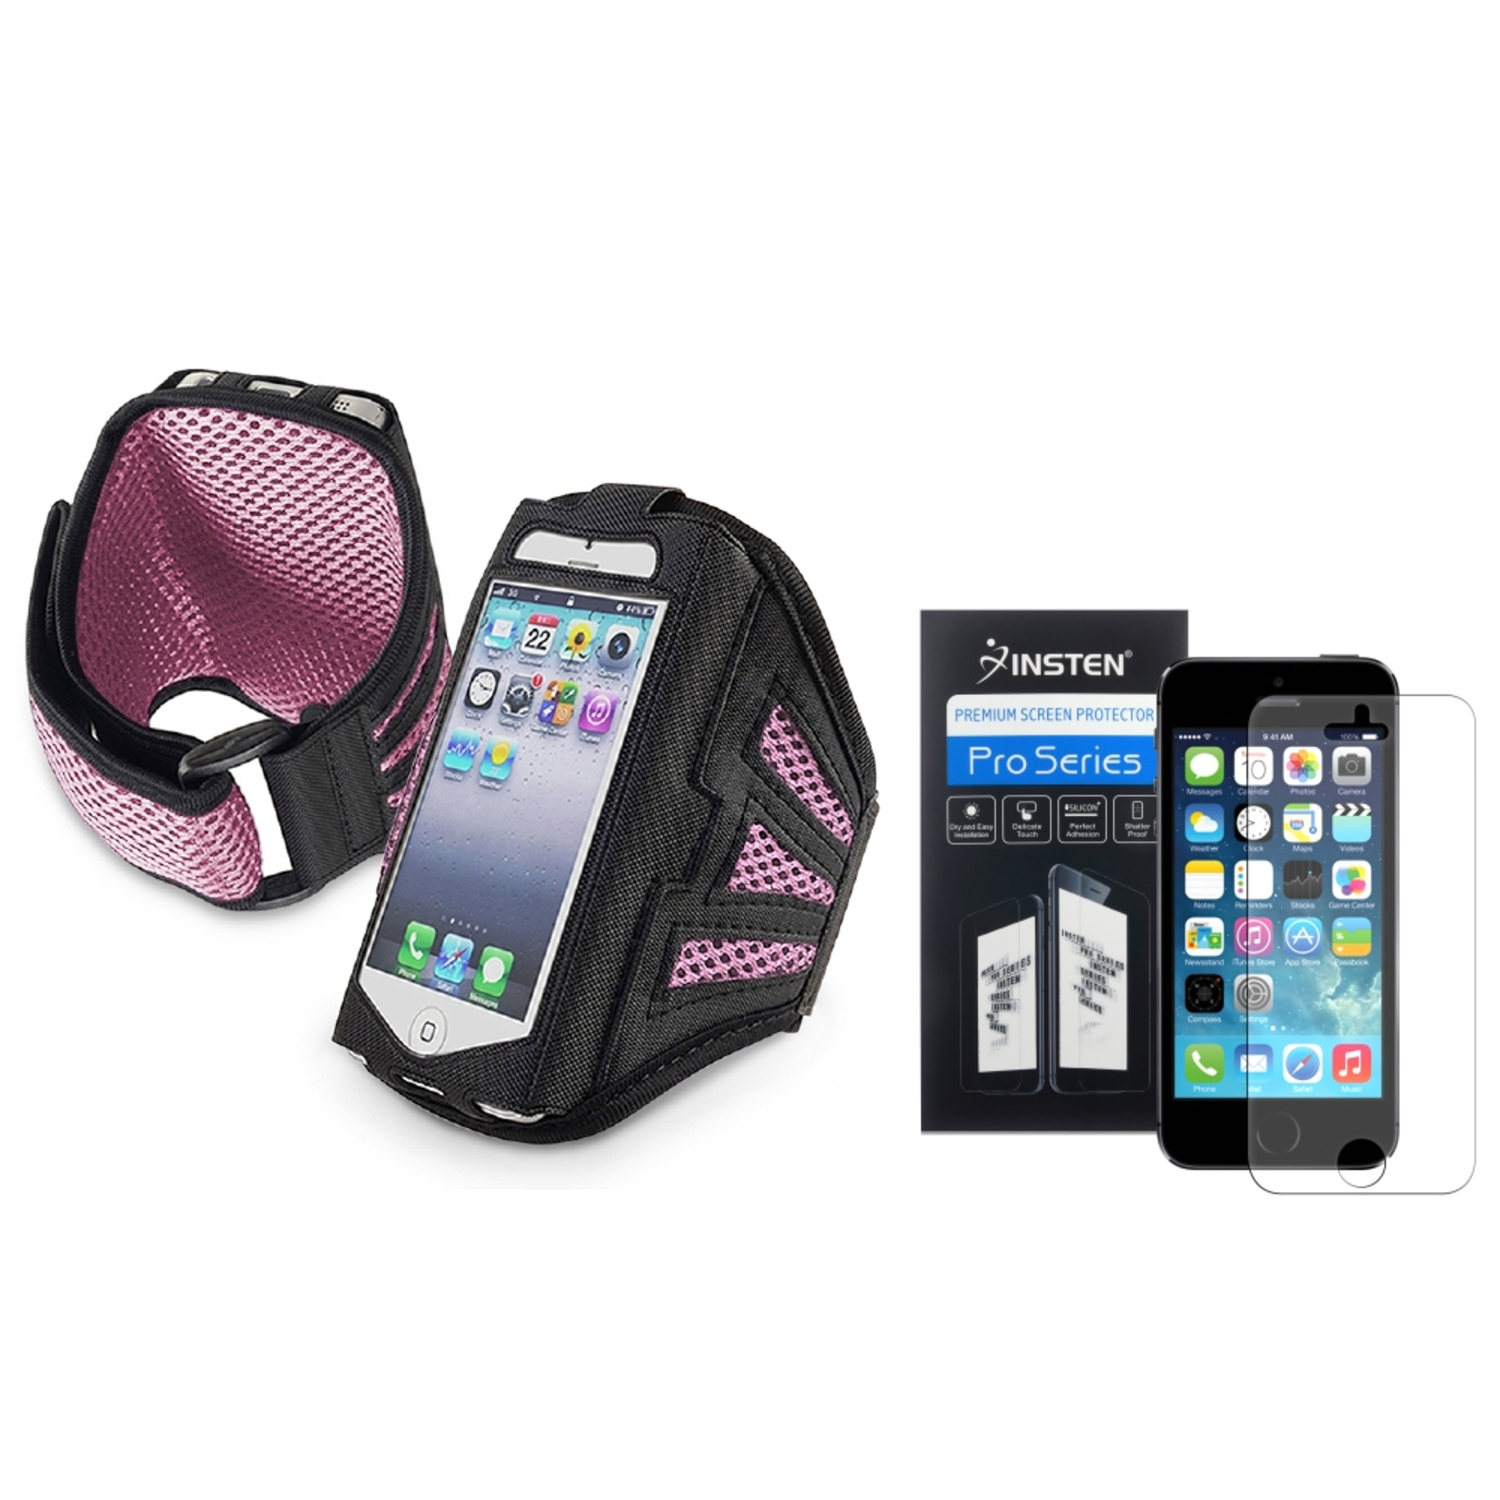 Insten Black/Pink Sports Running Armband Gym Case for iPhone 5 5G 5s + Anti-Glare Screen FIlm